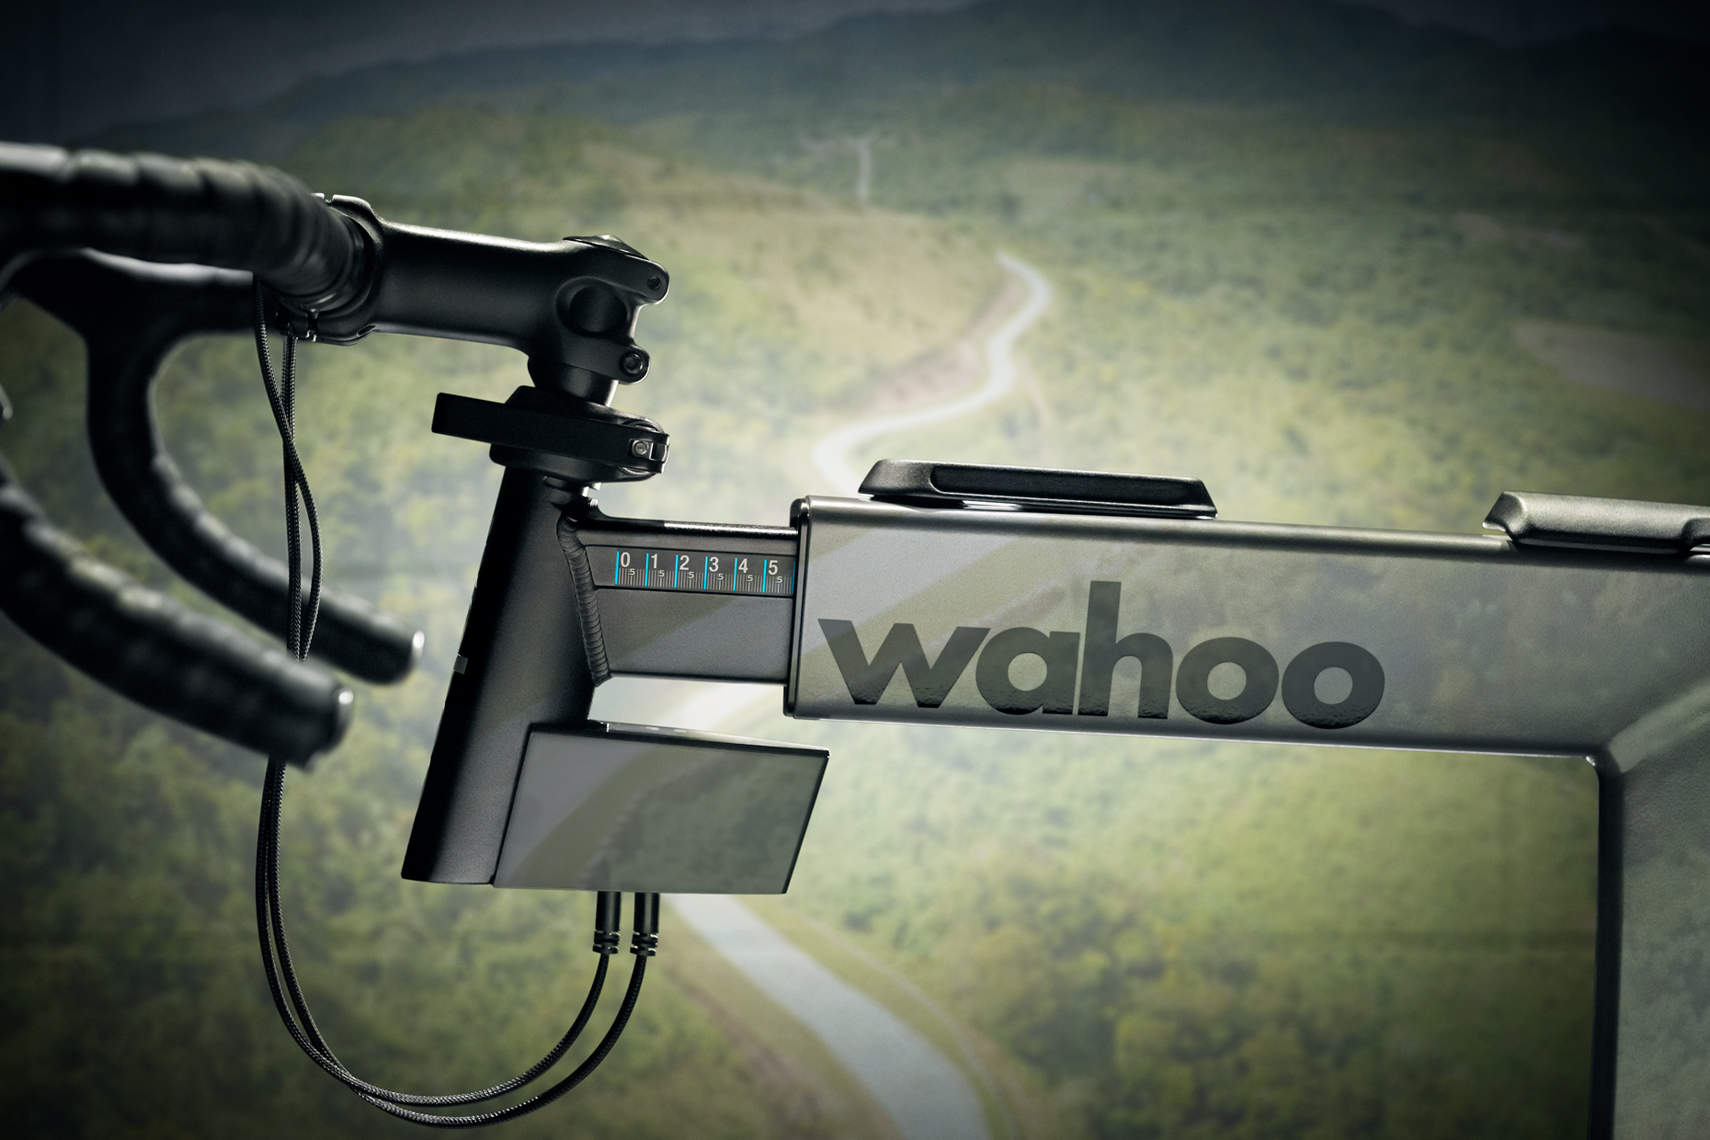 Wahoo KICKR BIKE stem with projection composited over scene